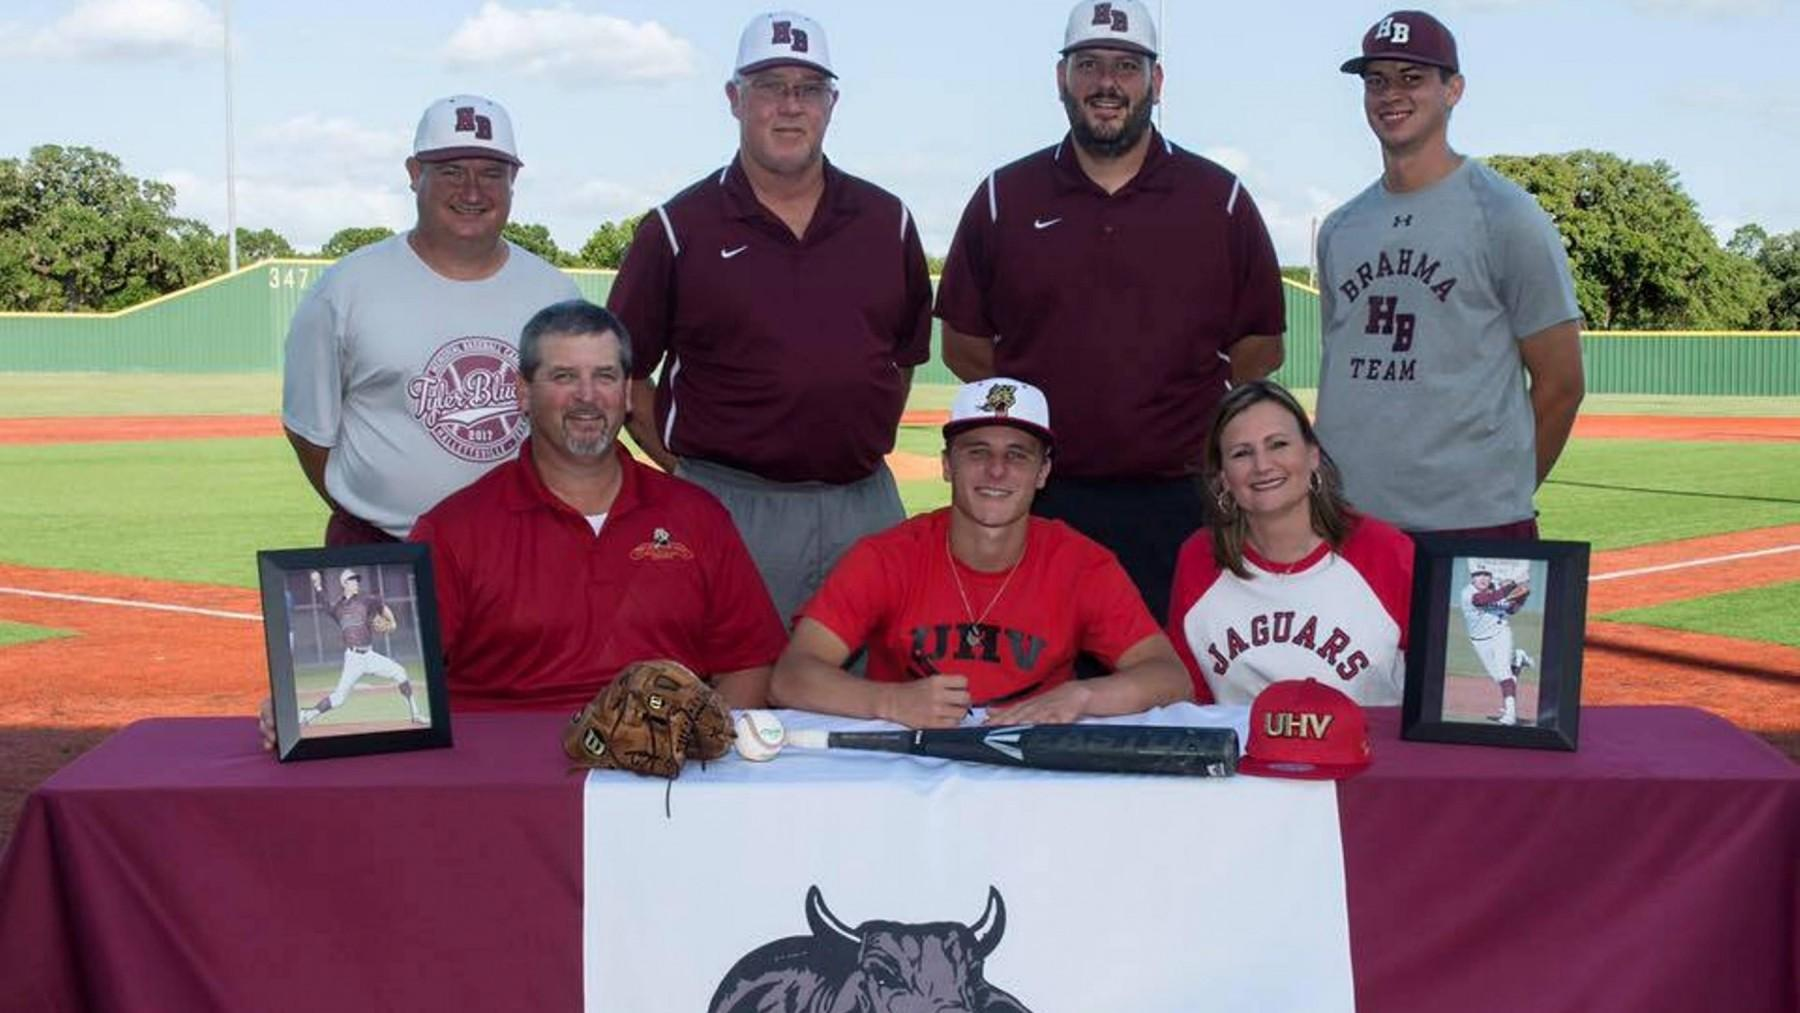 Hallettsville's Starns signs with UHV